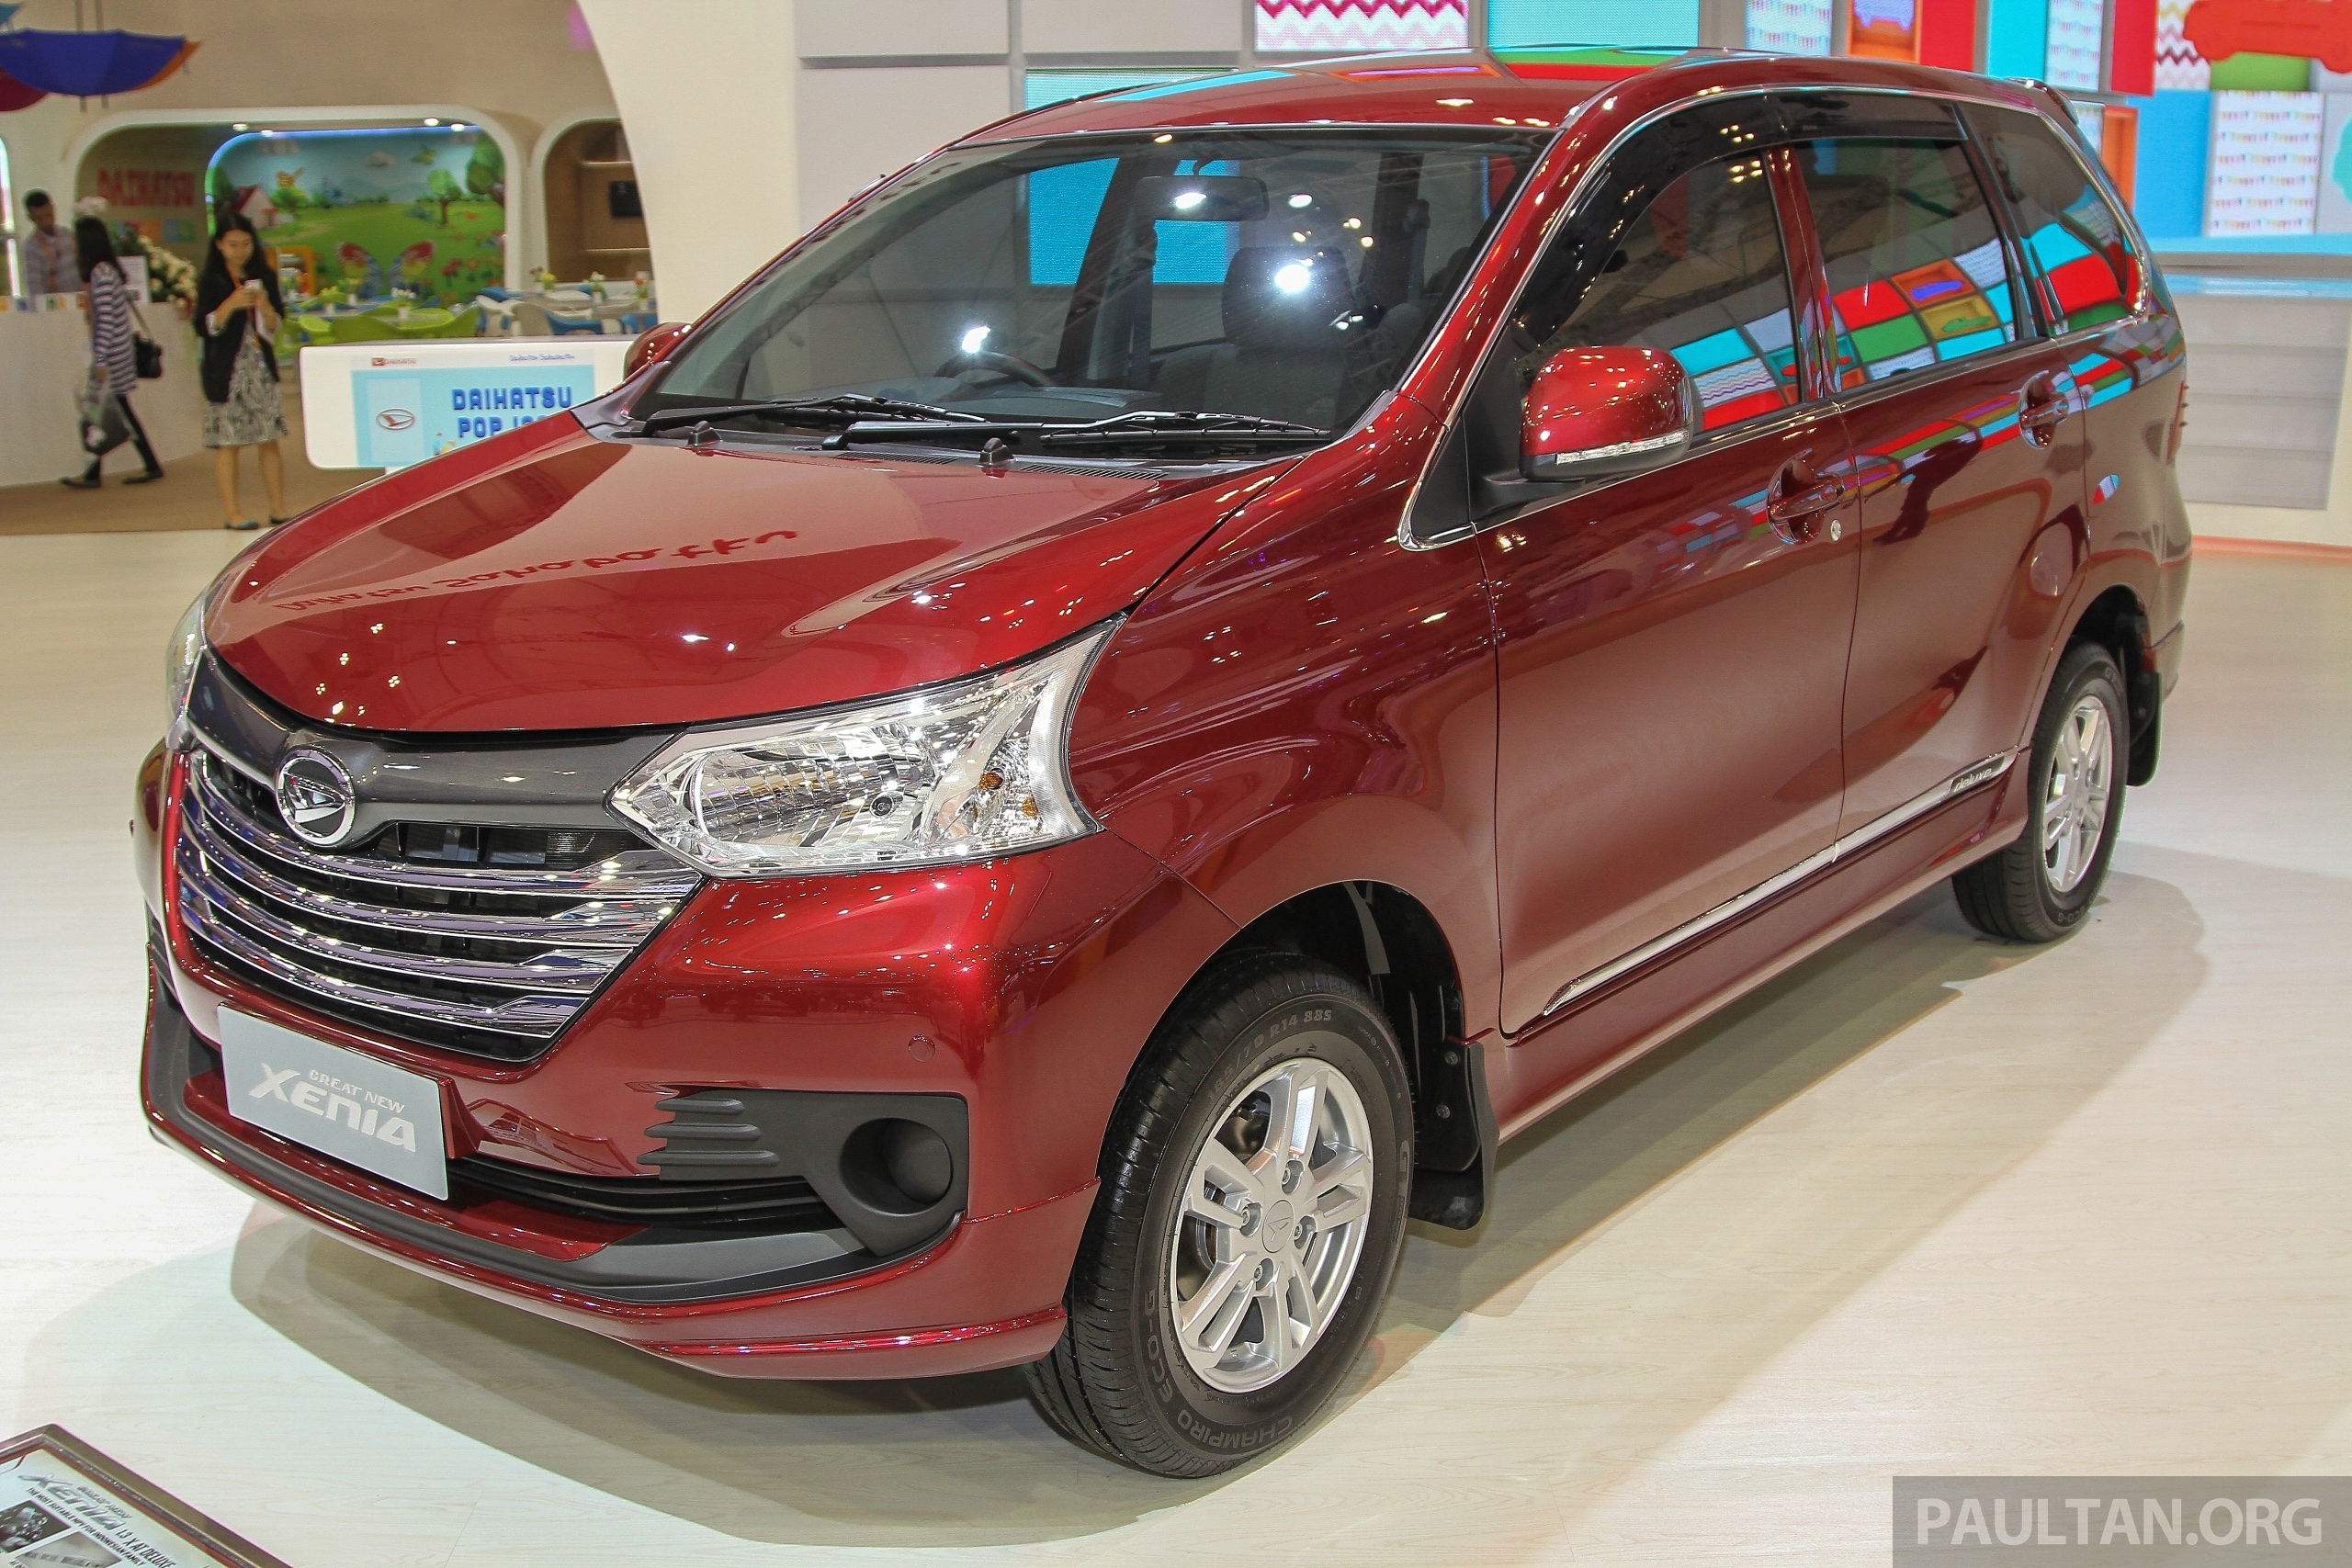 Facelifted Avanza's Sister